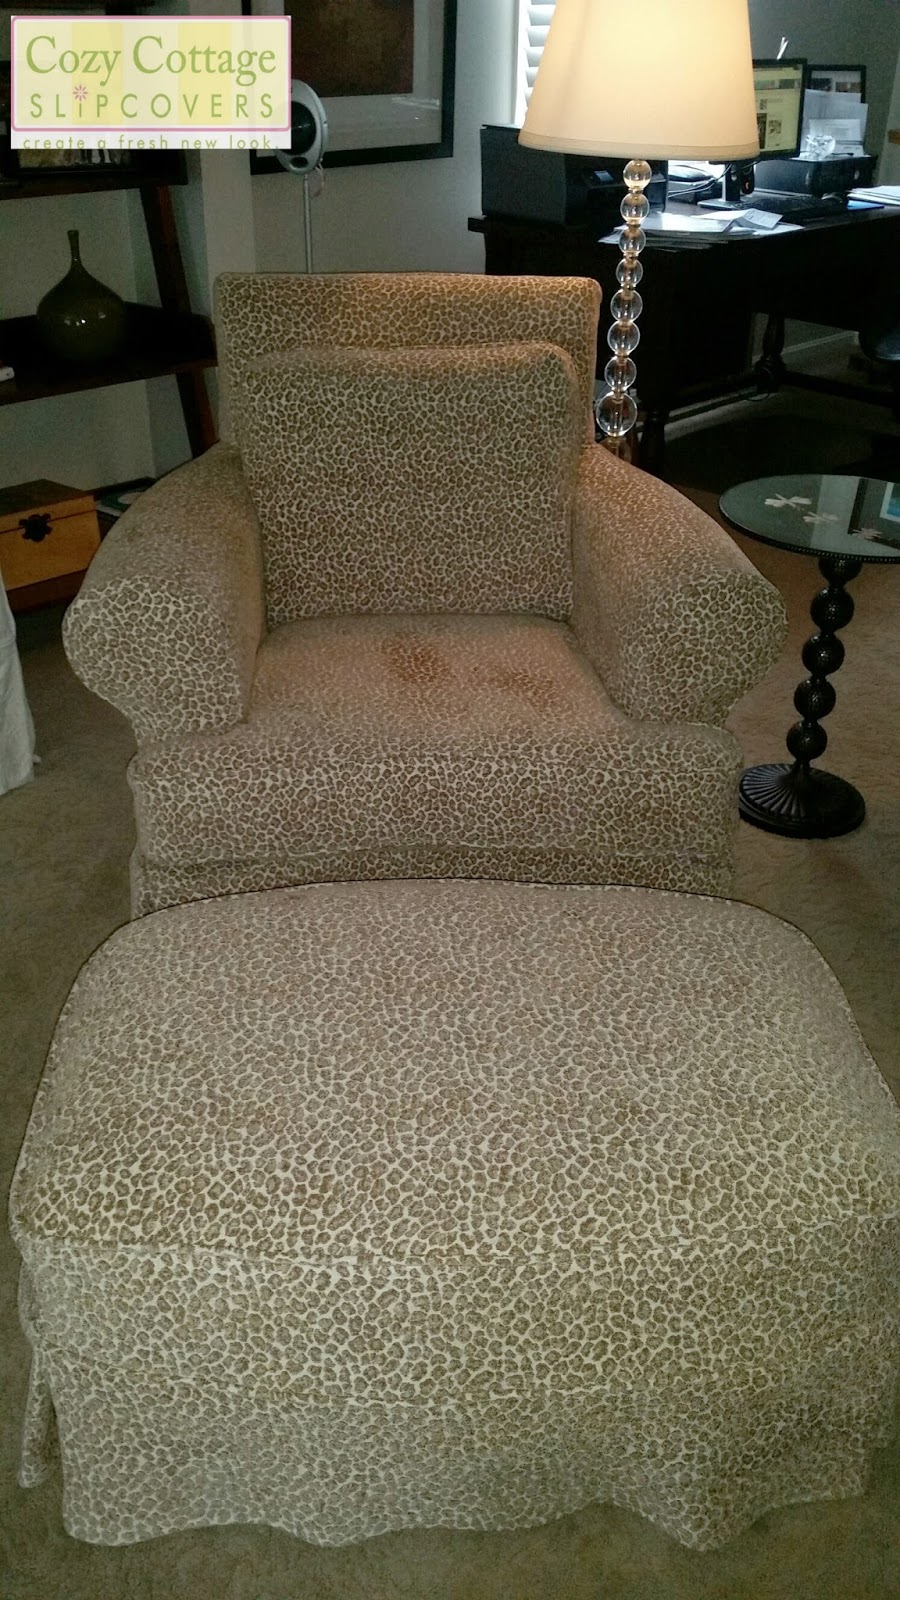 Cozy Cottage Slipcovers Leopard Animal Print Slipcover